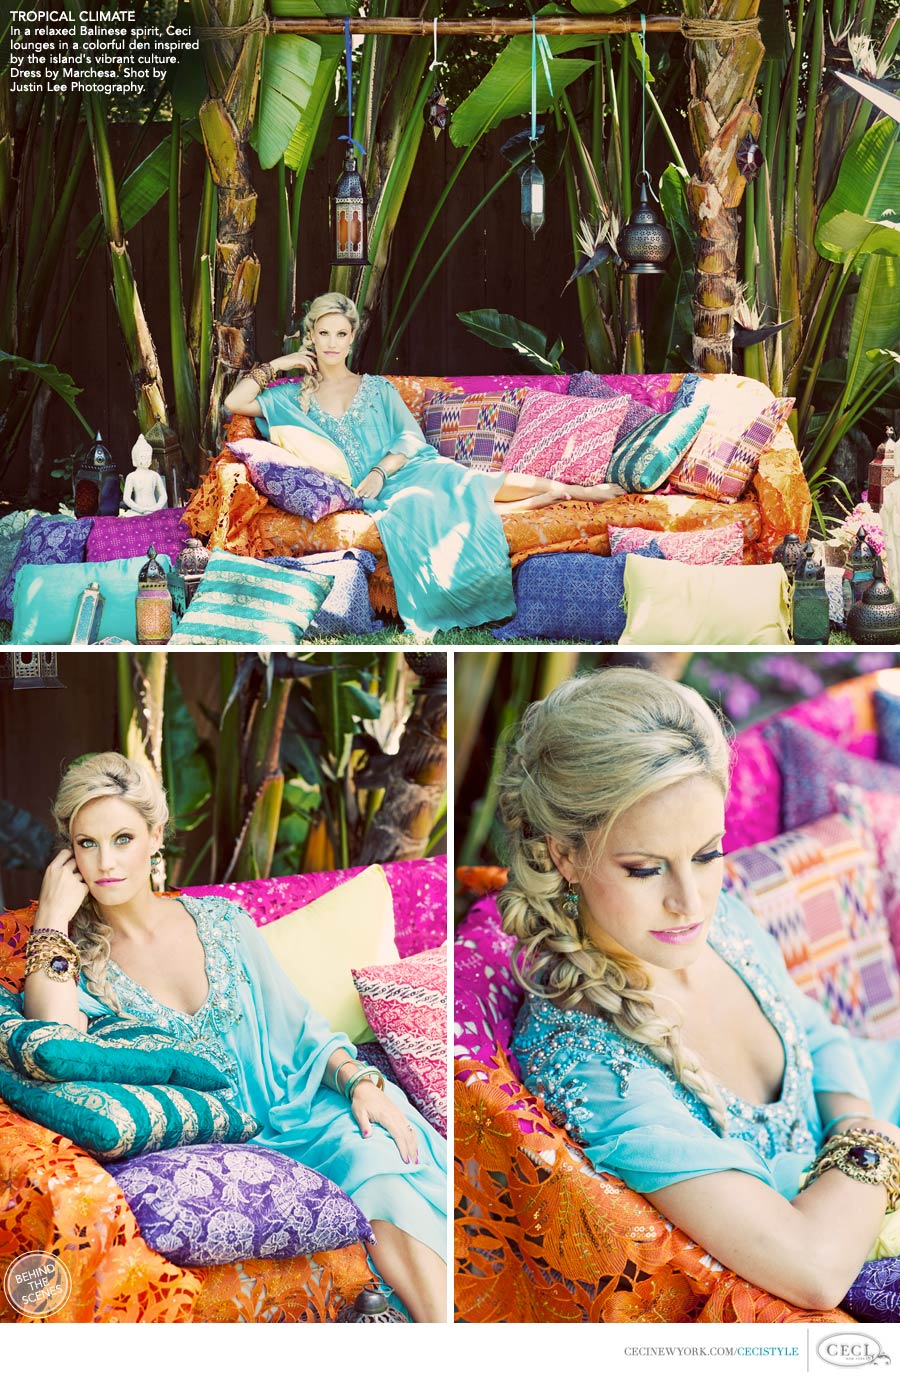 Ceci Johnson of Ceci New York - TROPICAL CLIMATE: In a relaxed Balinese spirit, Ceci lounges in a colorful den inspired by the island's vibrant culture. Dress by Marchesa. Shot by Justin Lee Photography.